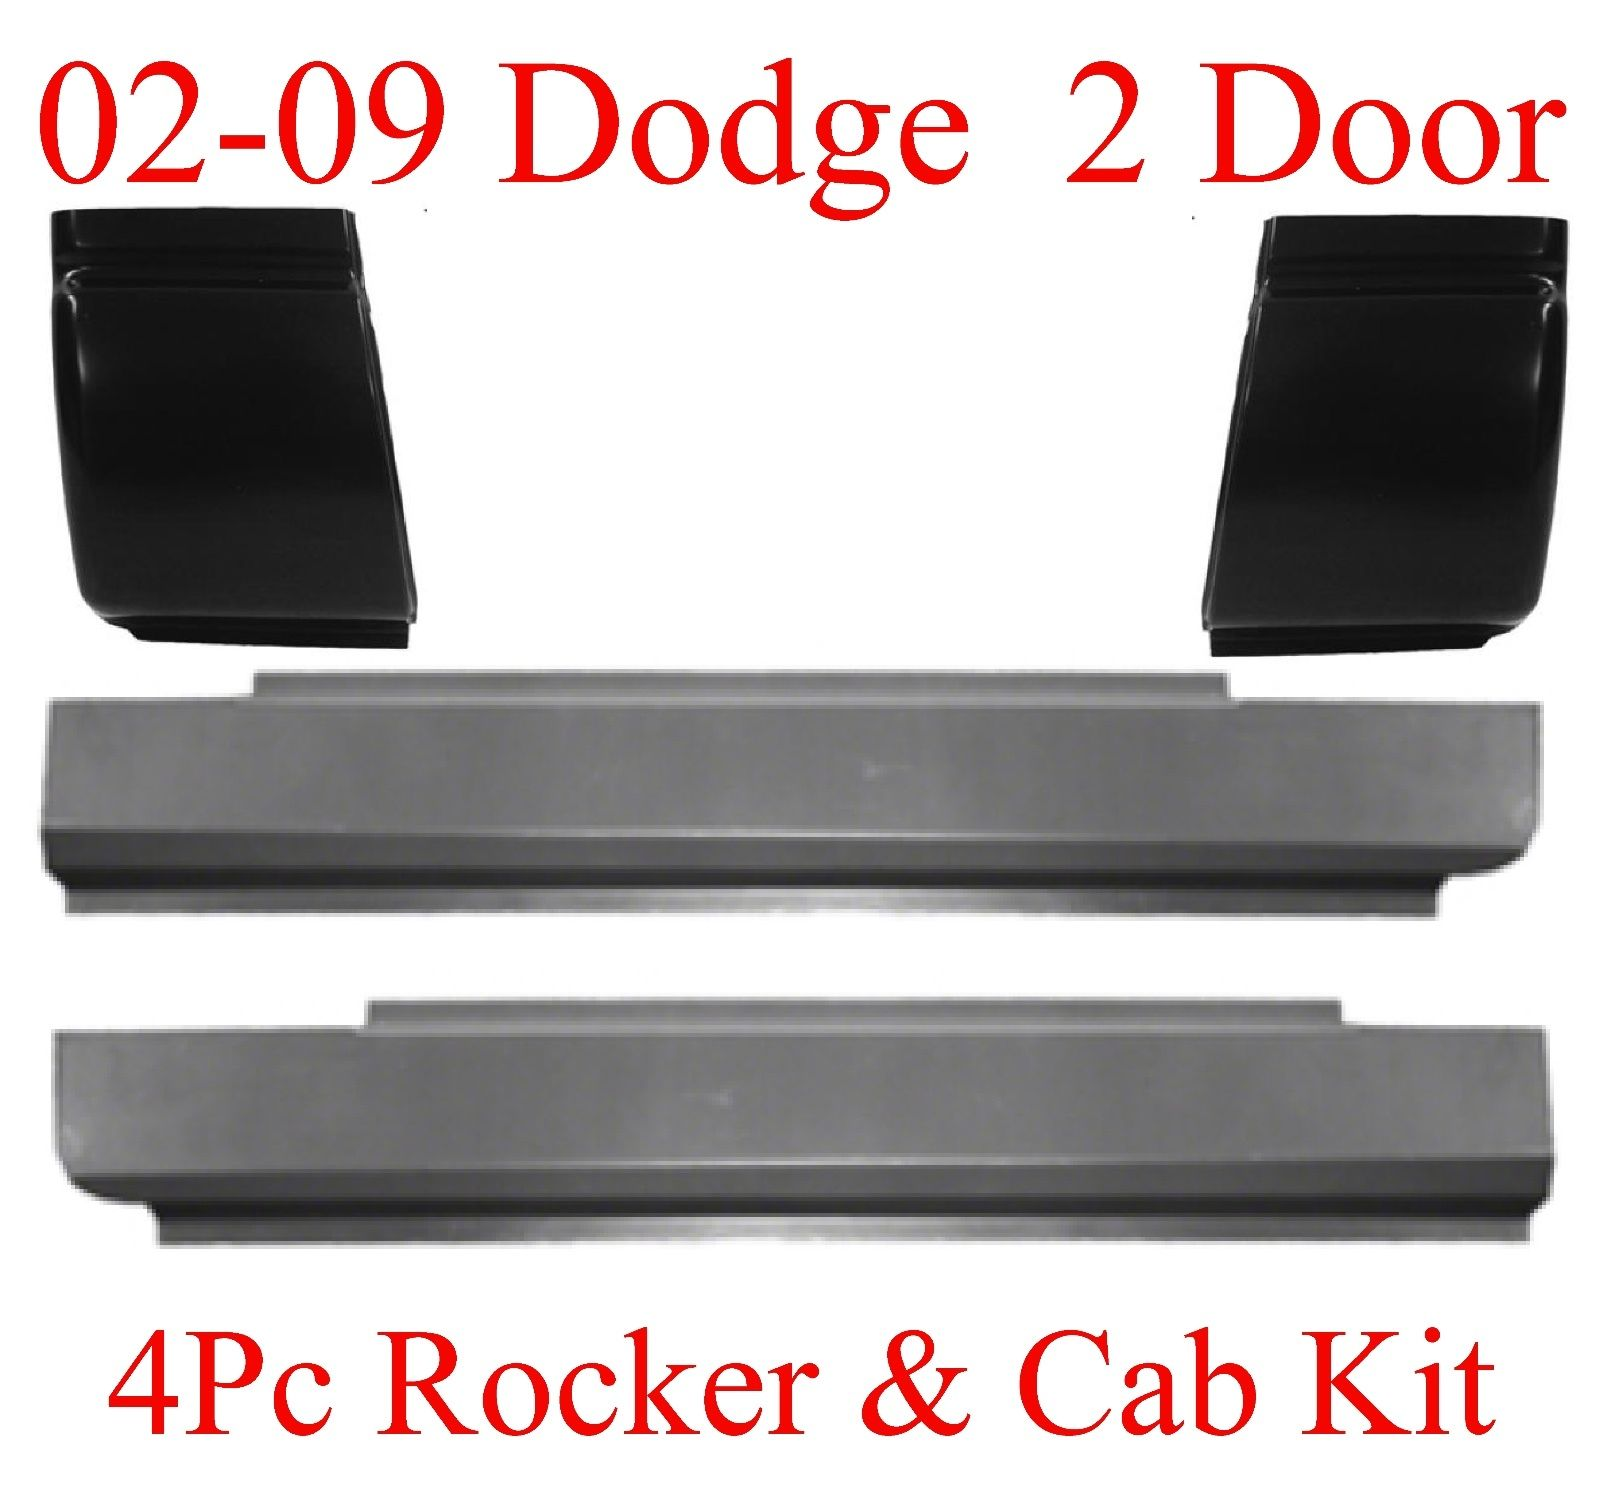 02-09 Dodge 4Pc Regular Cab Slip-On Rocker & Cab Corner Kit